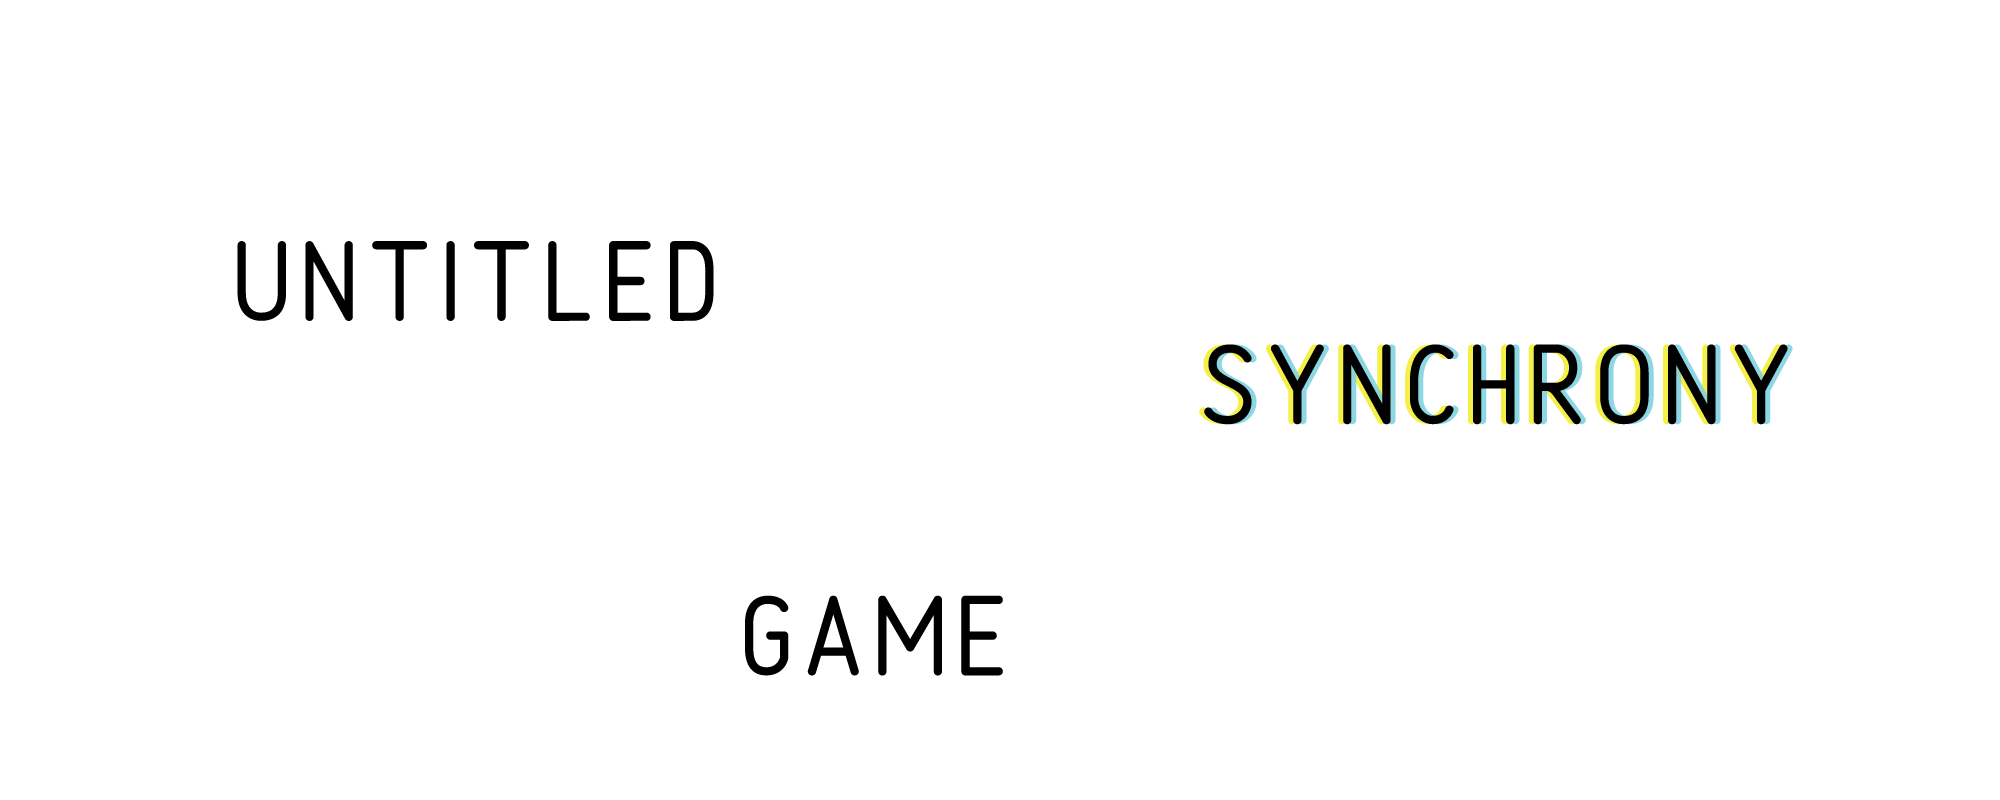 untitled synchrony game